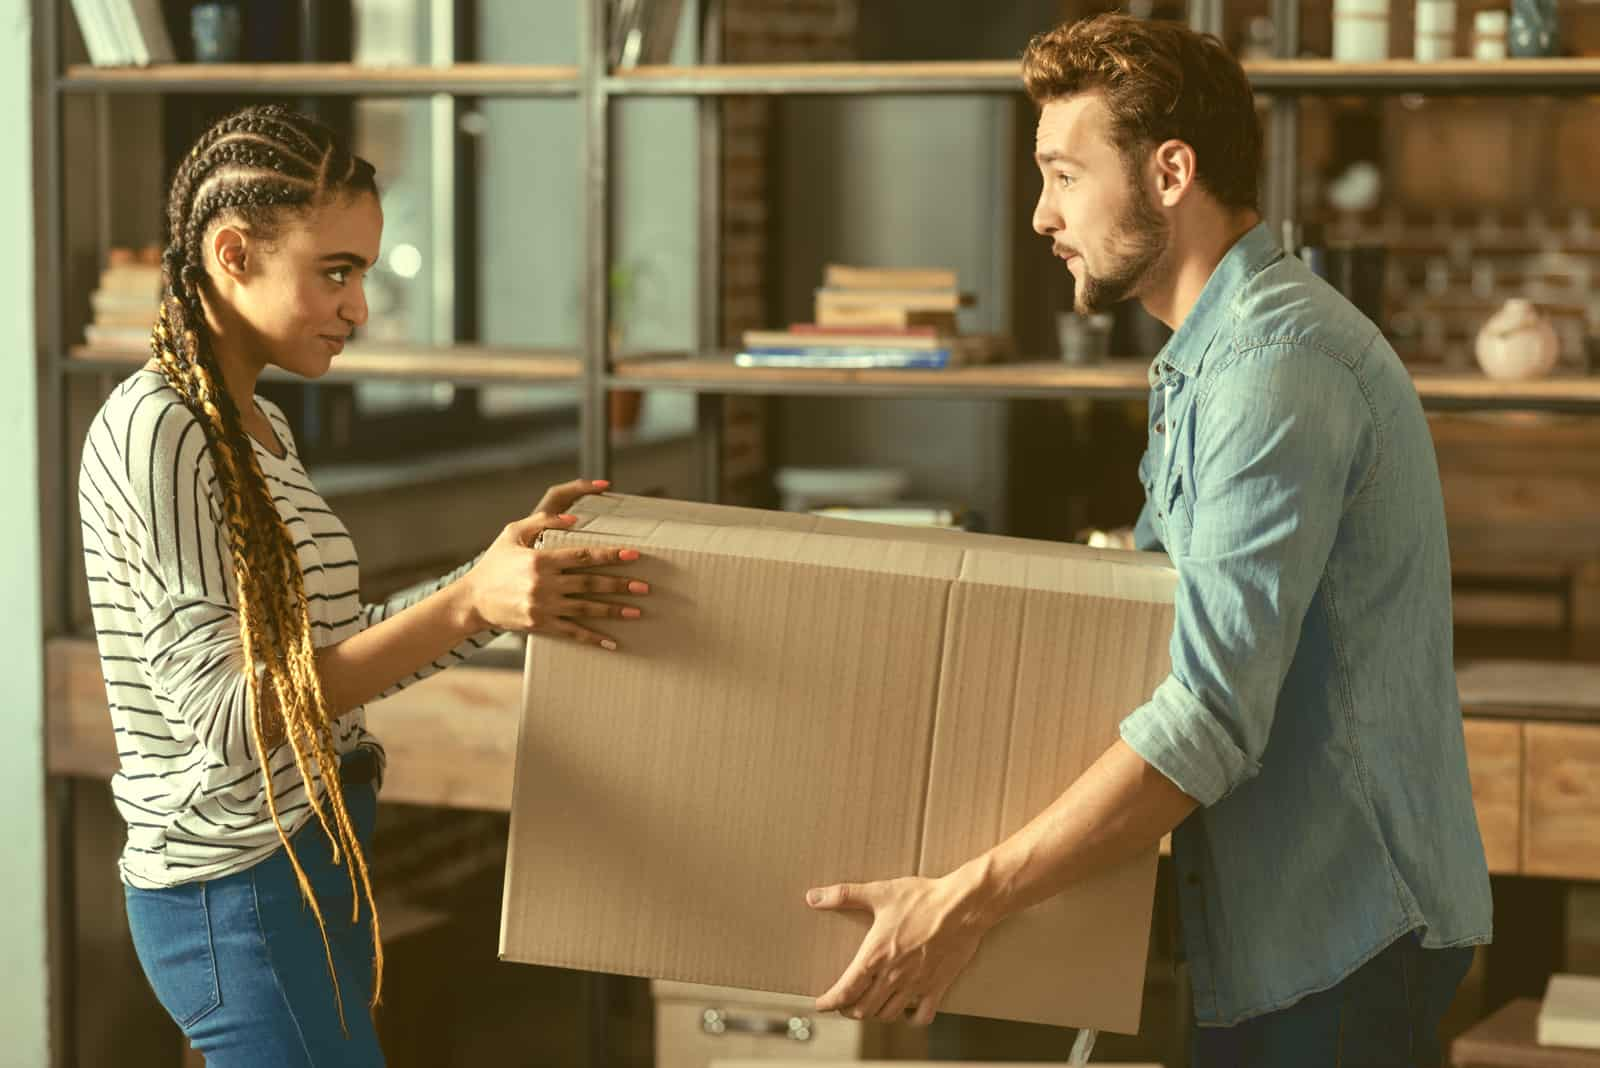 a man and a woman hold a cardboard package